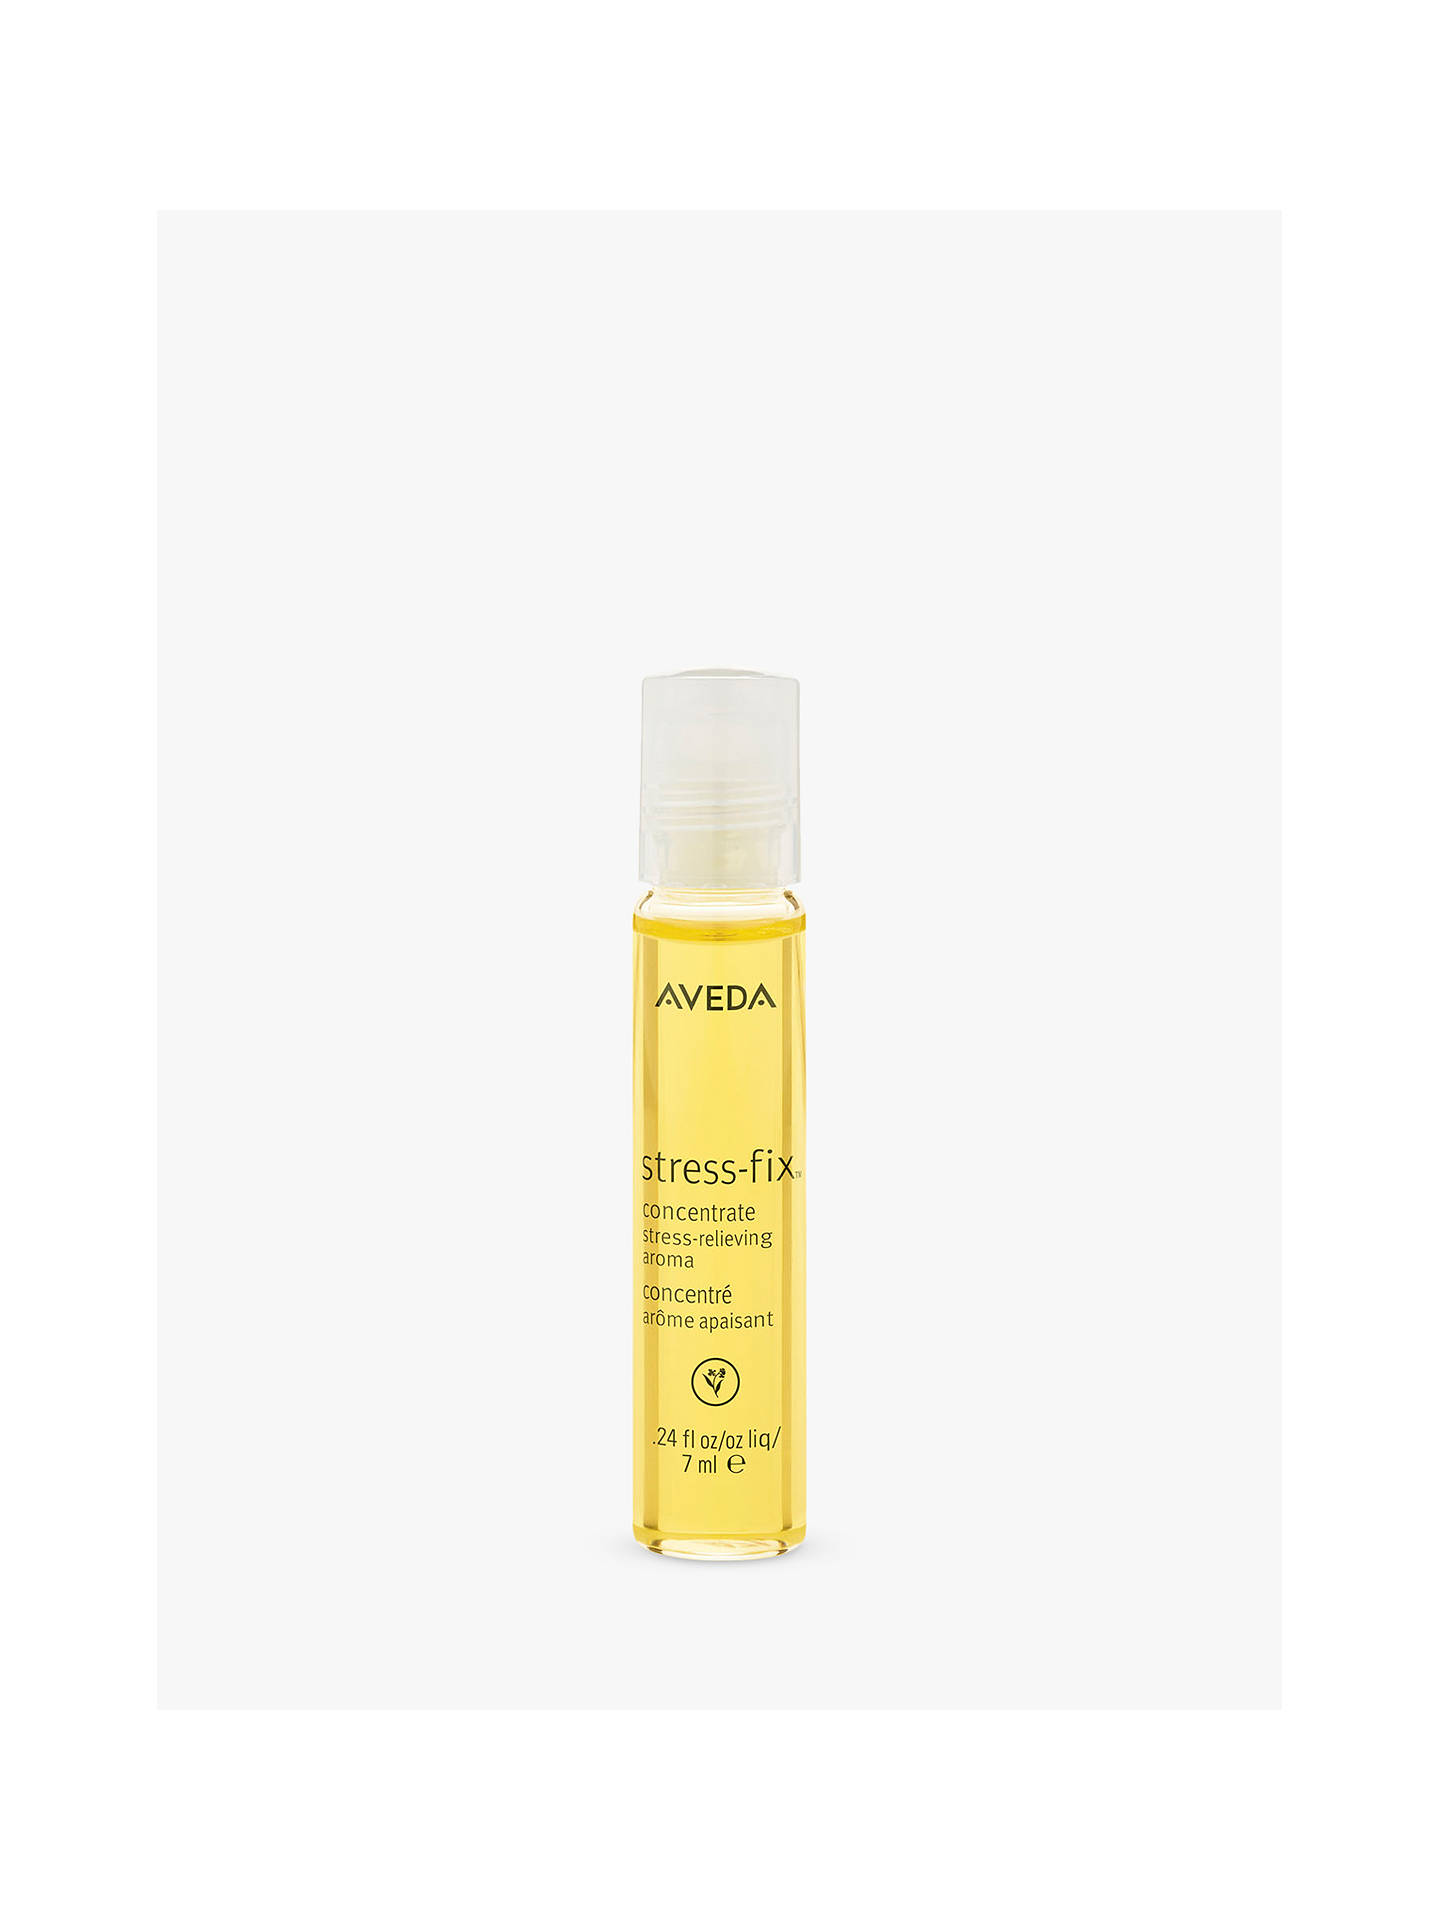 Buy Aveda Stress-Fix™ Concentrate Rollerball, 7ml Online at johnlewis.com